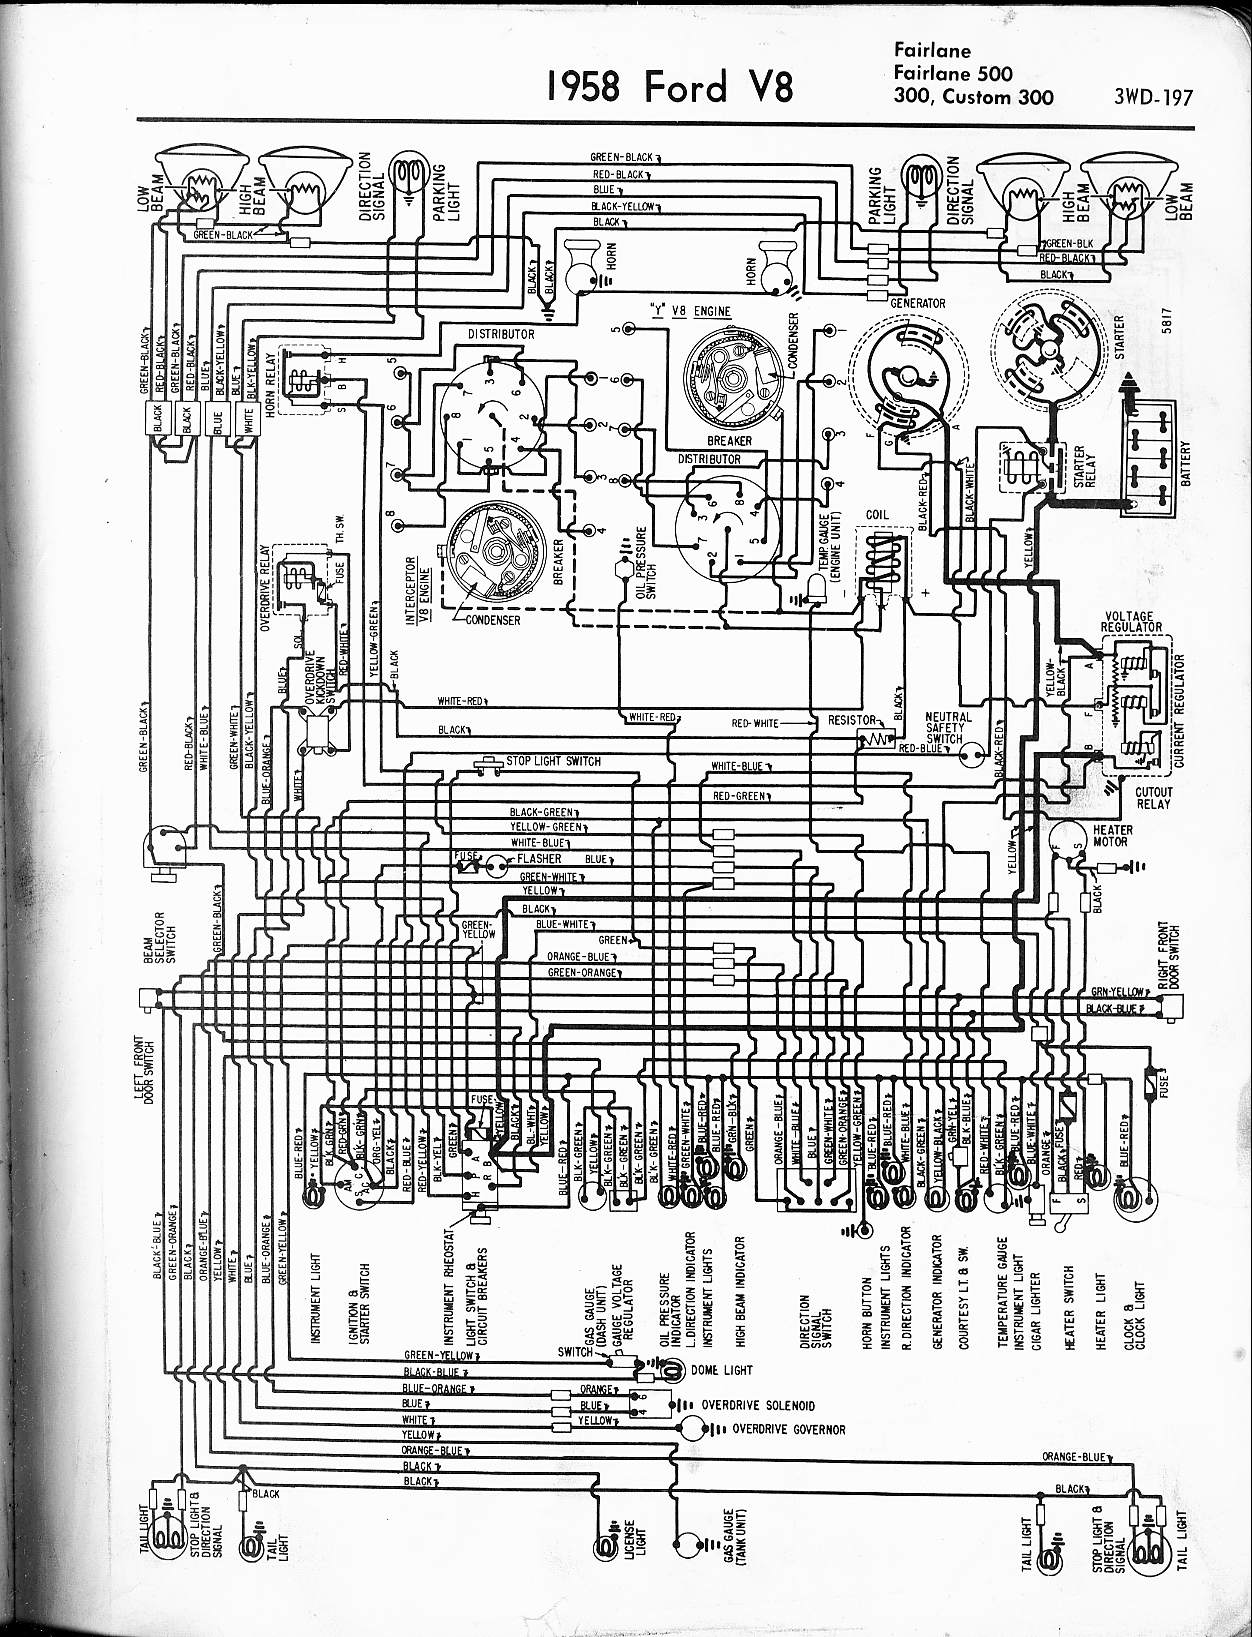 68 ford wiring diagram learn circuit diagram u2022 rh gadgetowl co